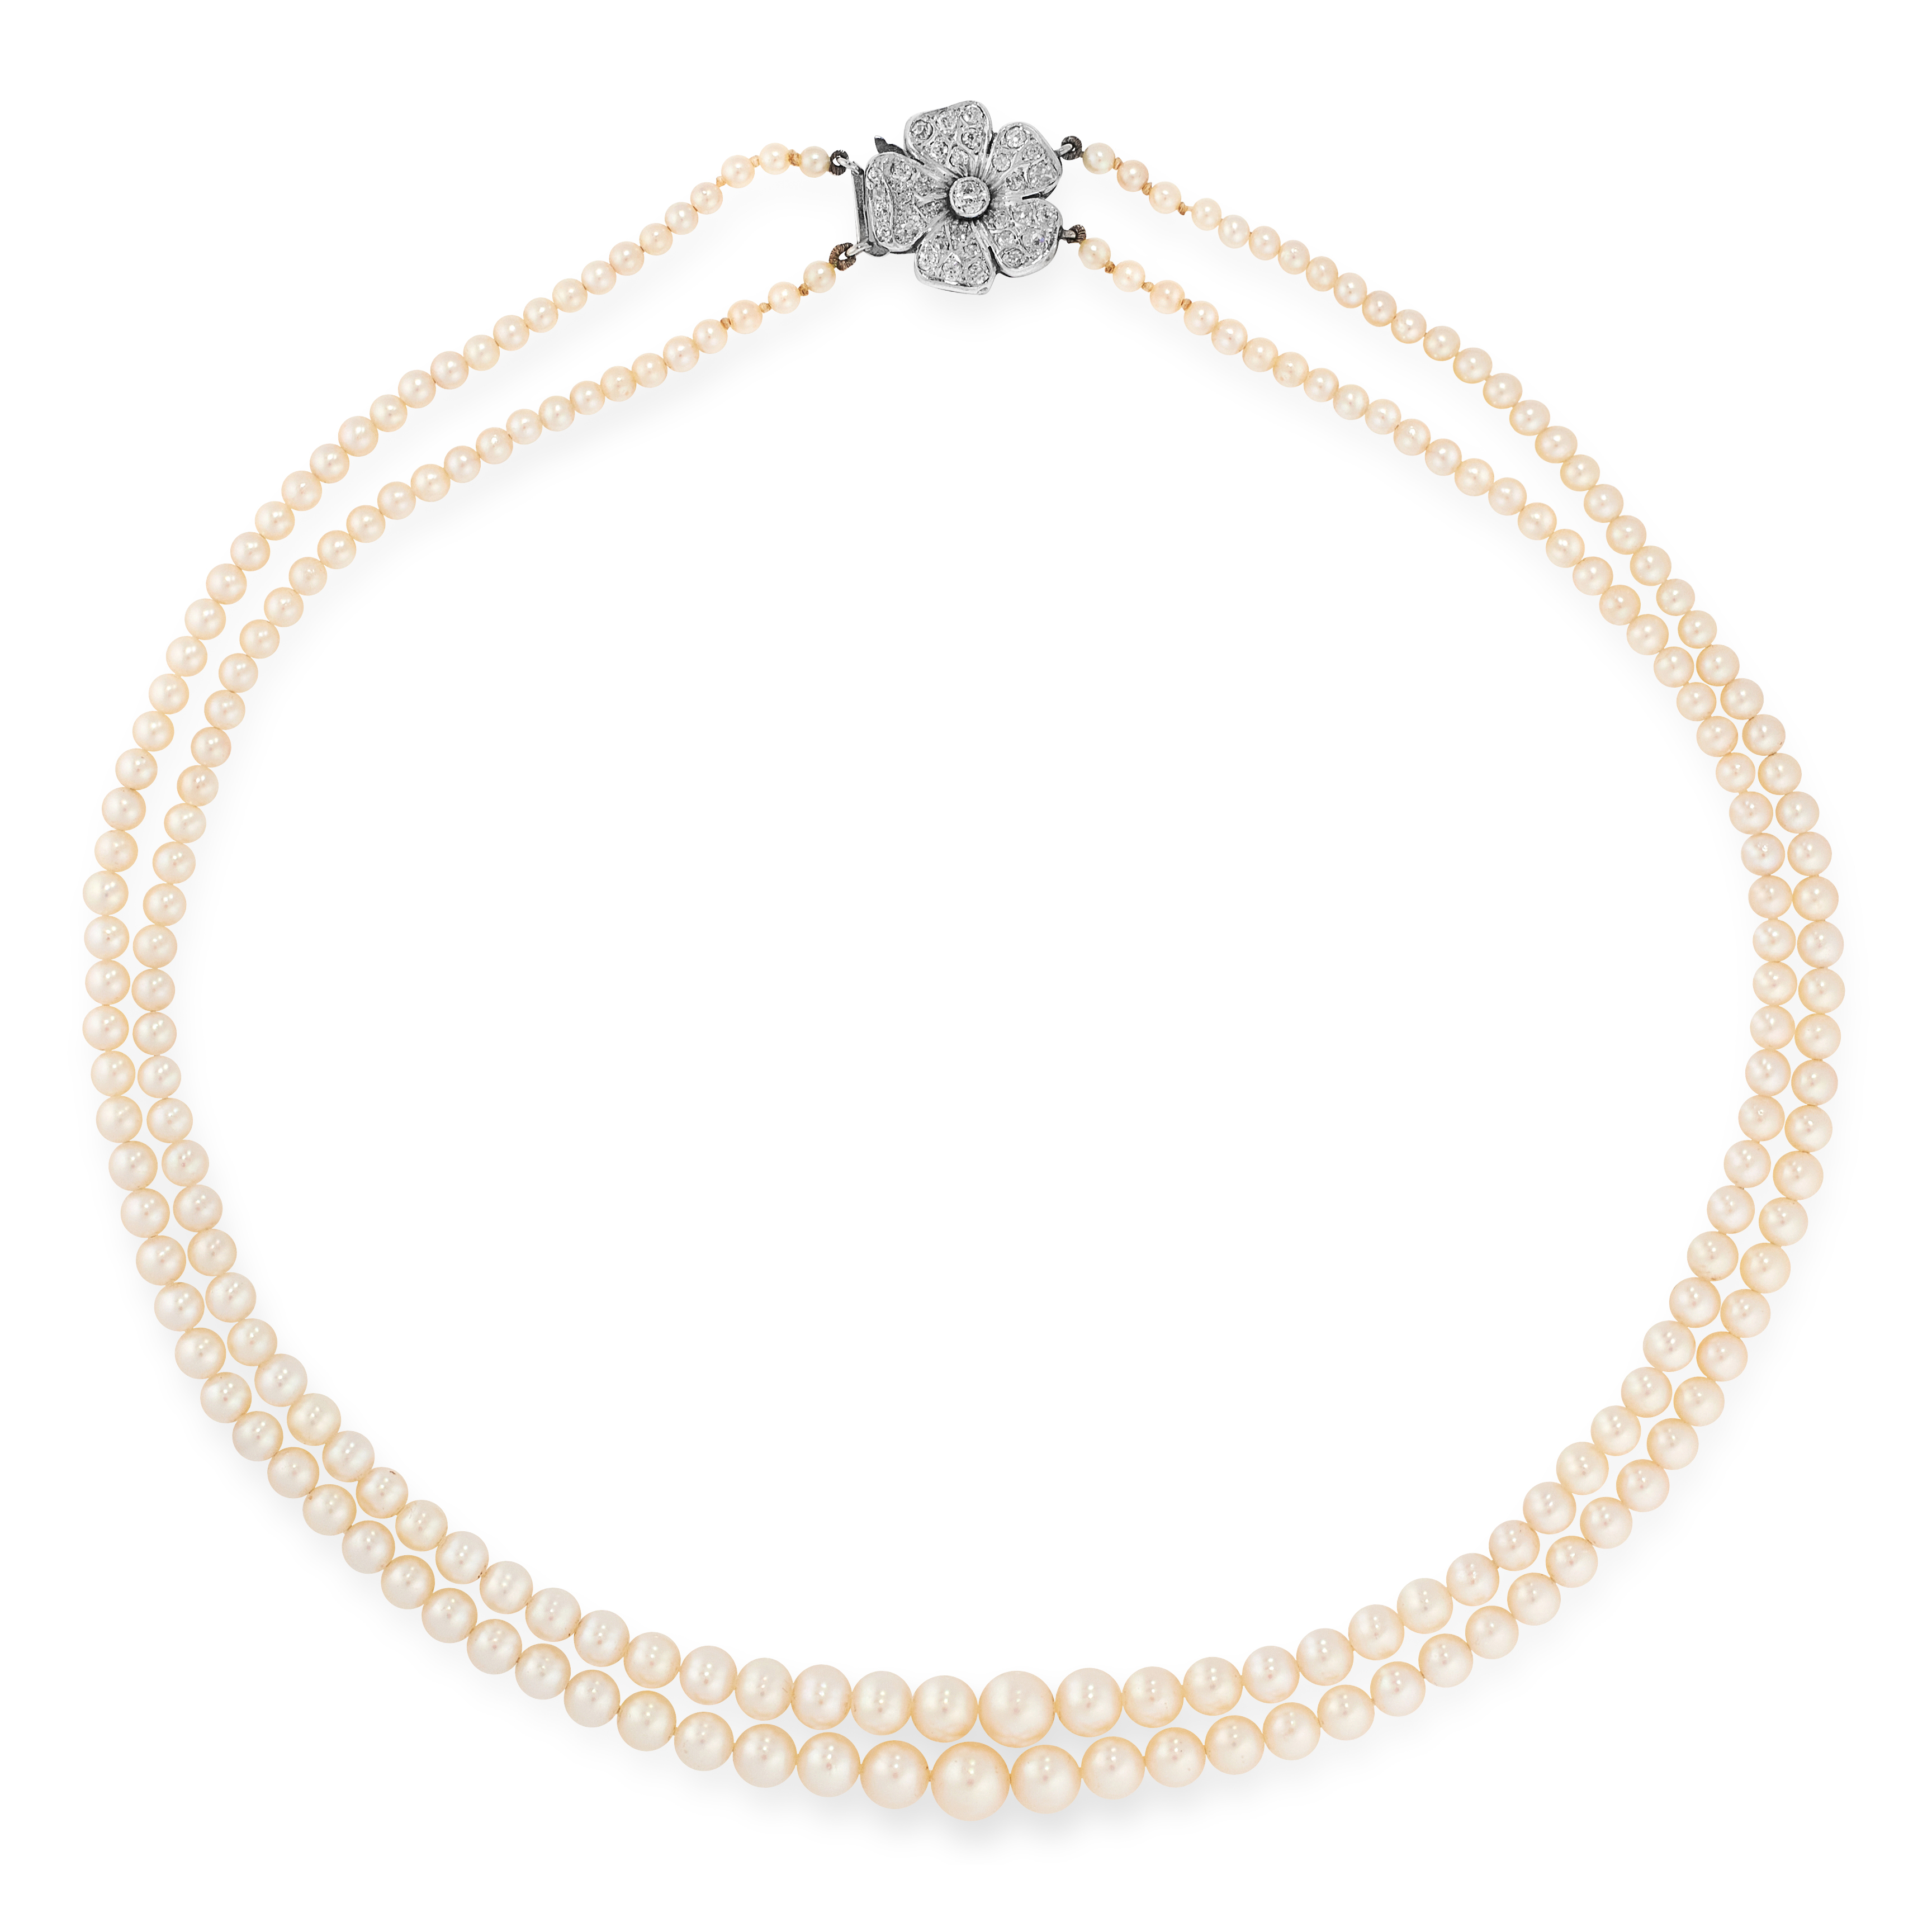 A PEARL AND DIAMOND NECKLACE, CIRCA 1955 in platinum, comprising two rows of graduated pearls